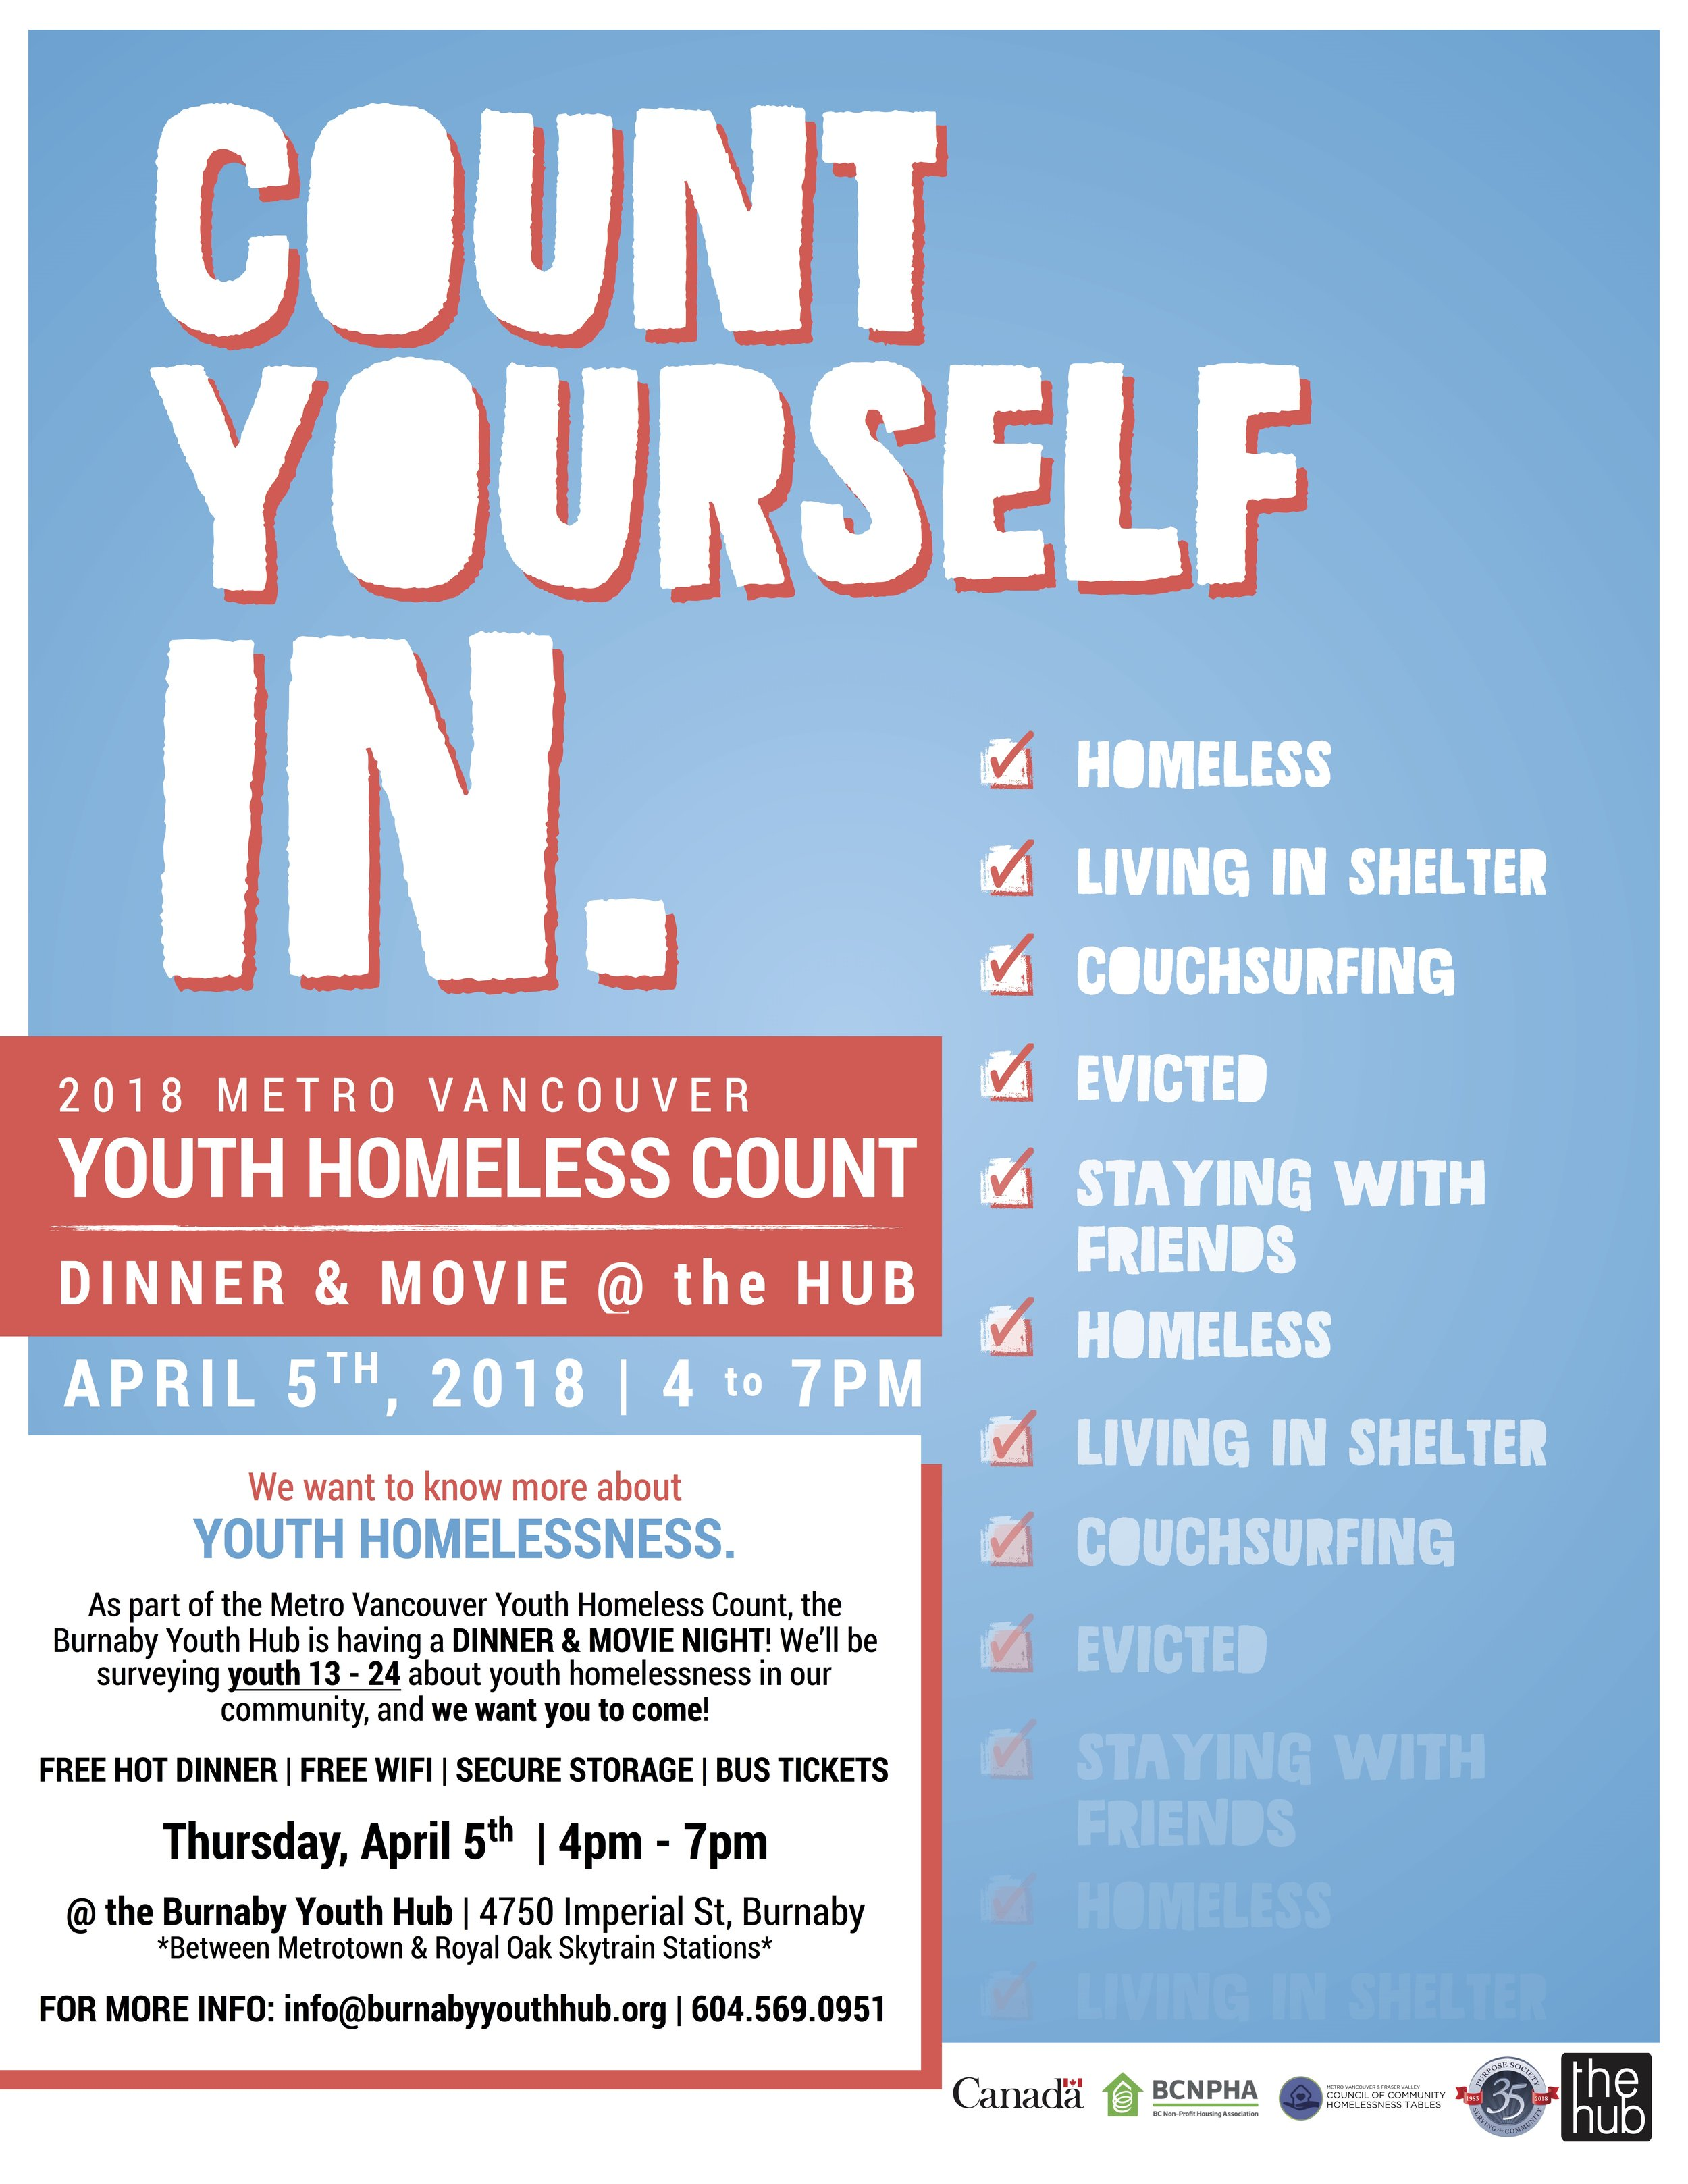 Burnaby Youth Hub - Youth Homeless Count Dinner Poster.jpg